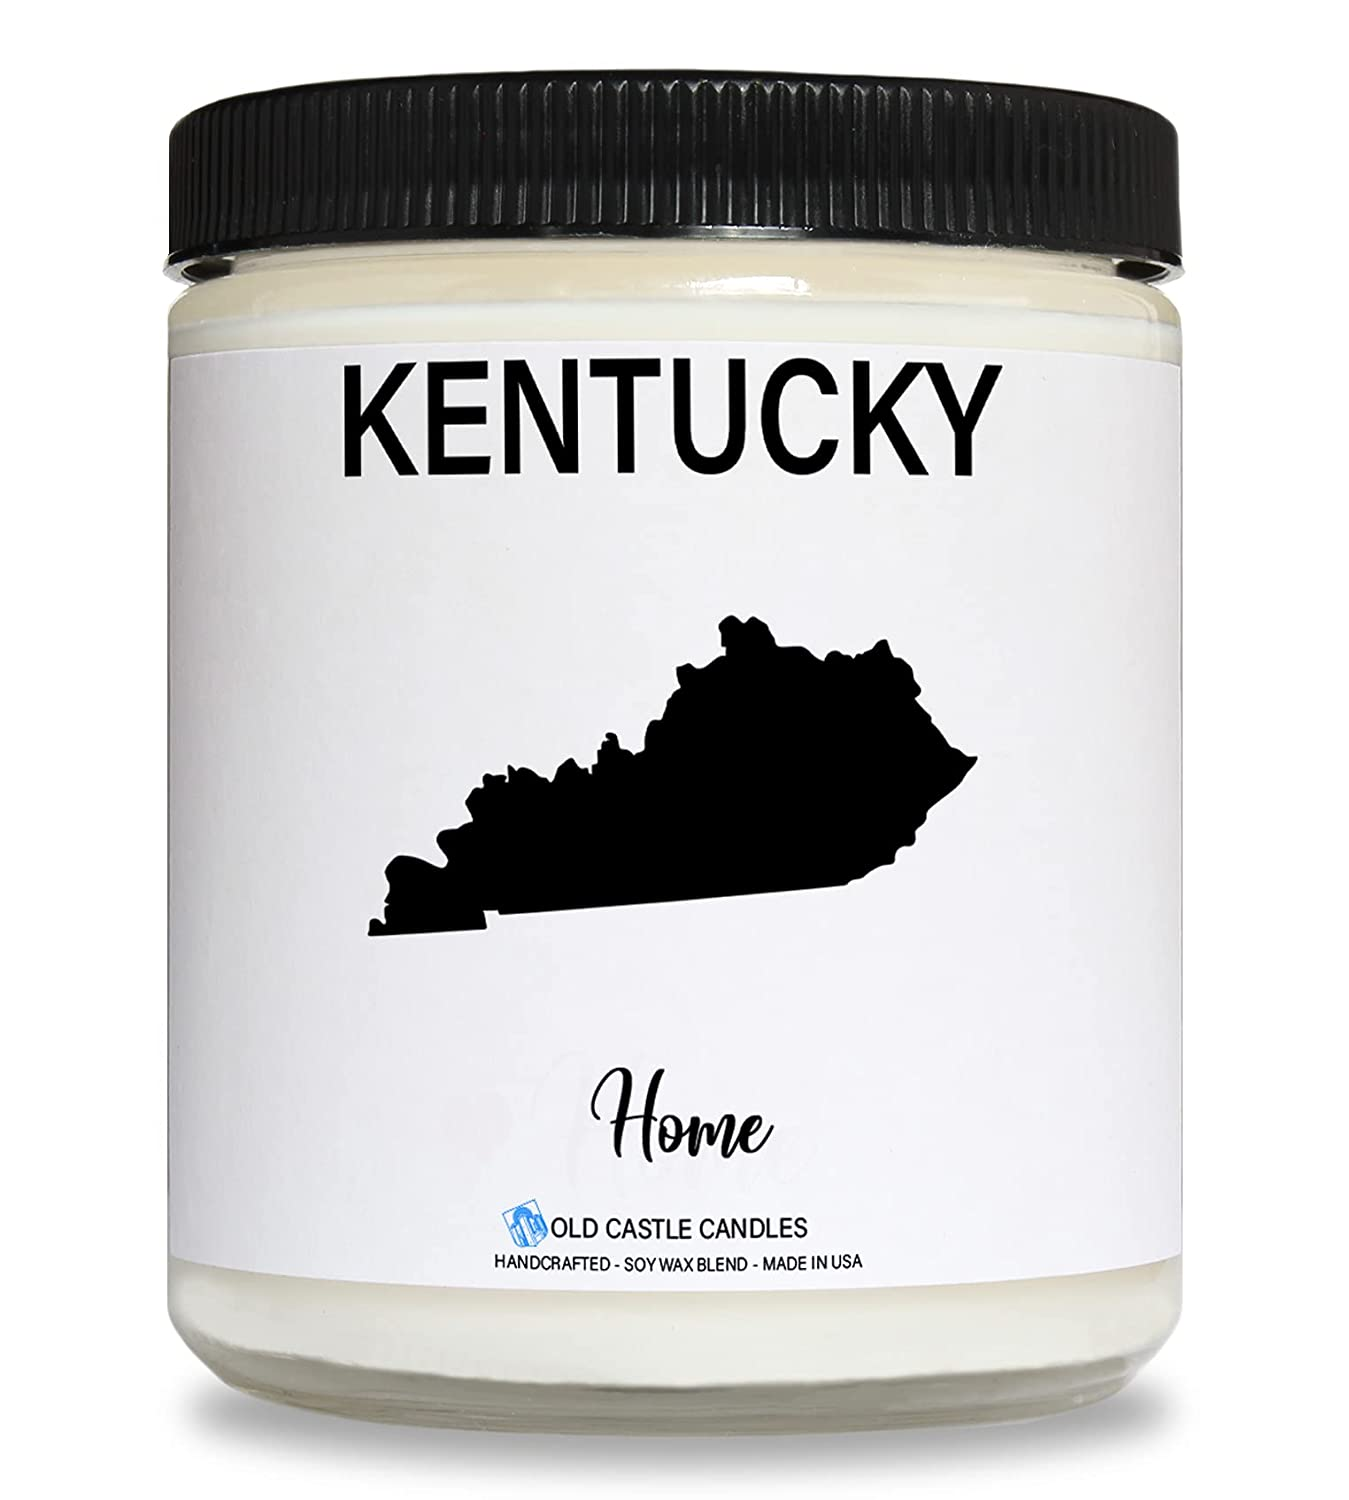 Kentucky Candle, Homesick Gift, Personalized College Dorm Decor, 8 ounce